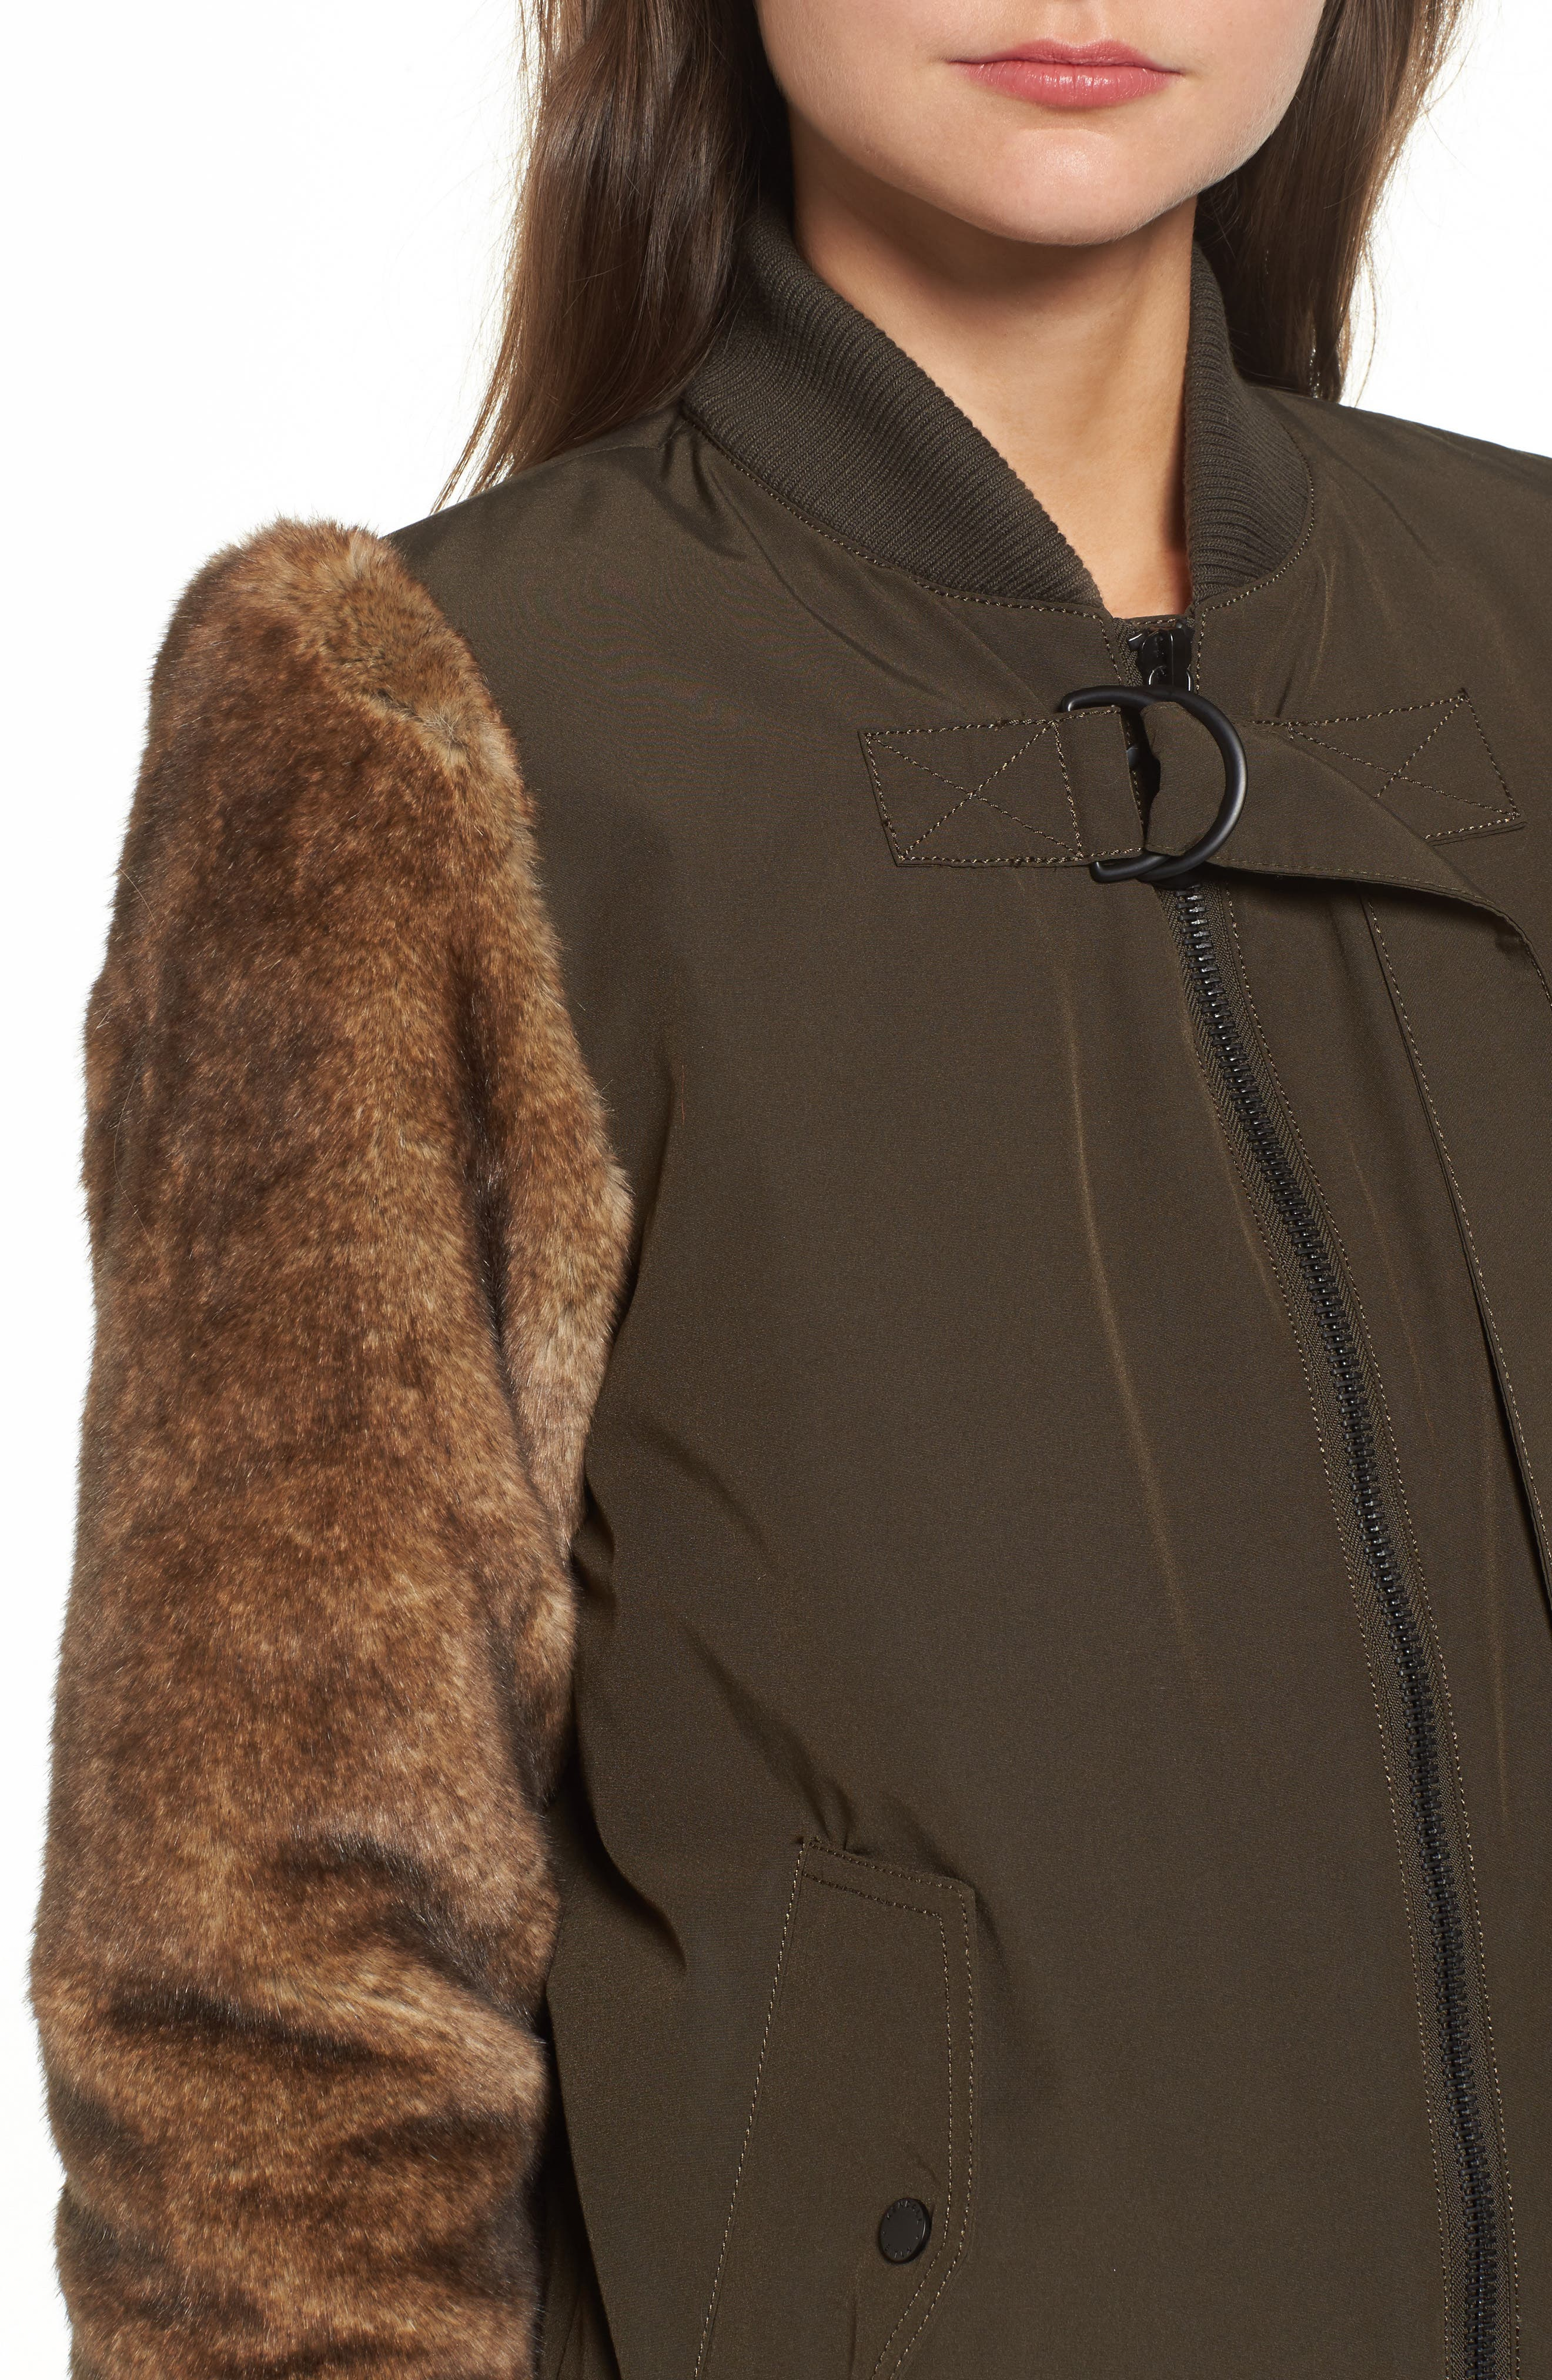 Faux Fur Sleeve Bomber Jacket,                             Alternate thumbnail 4, color,